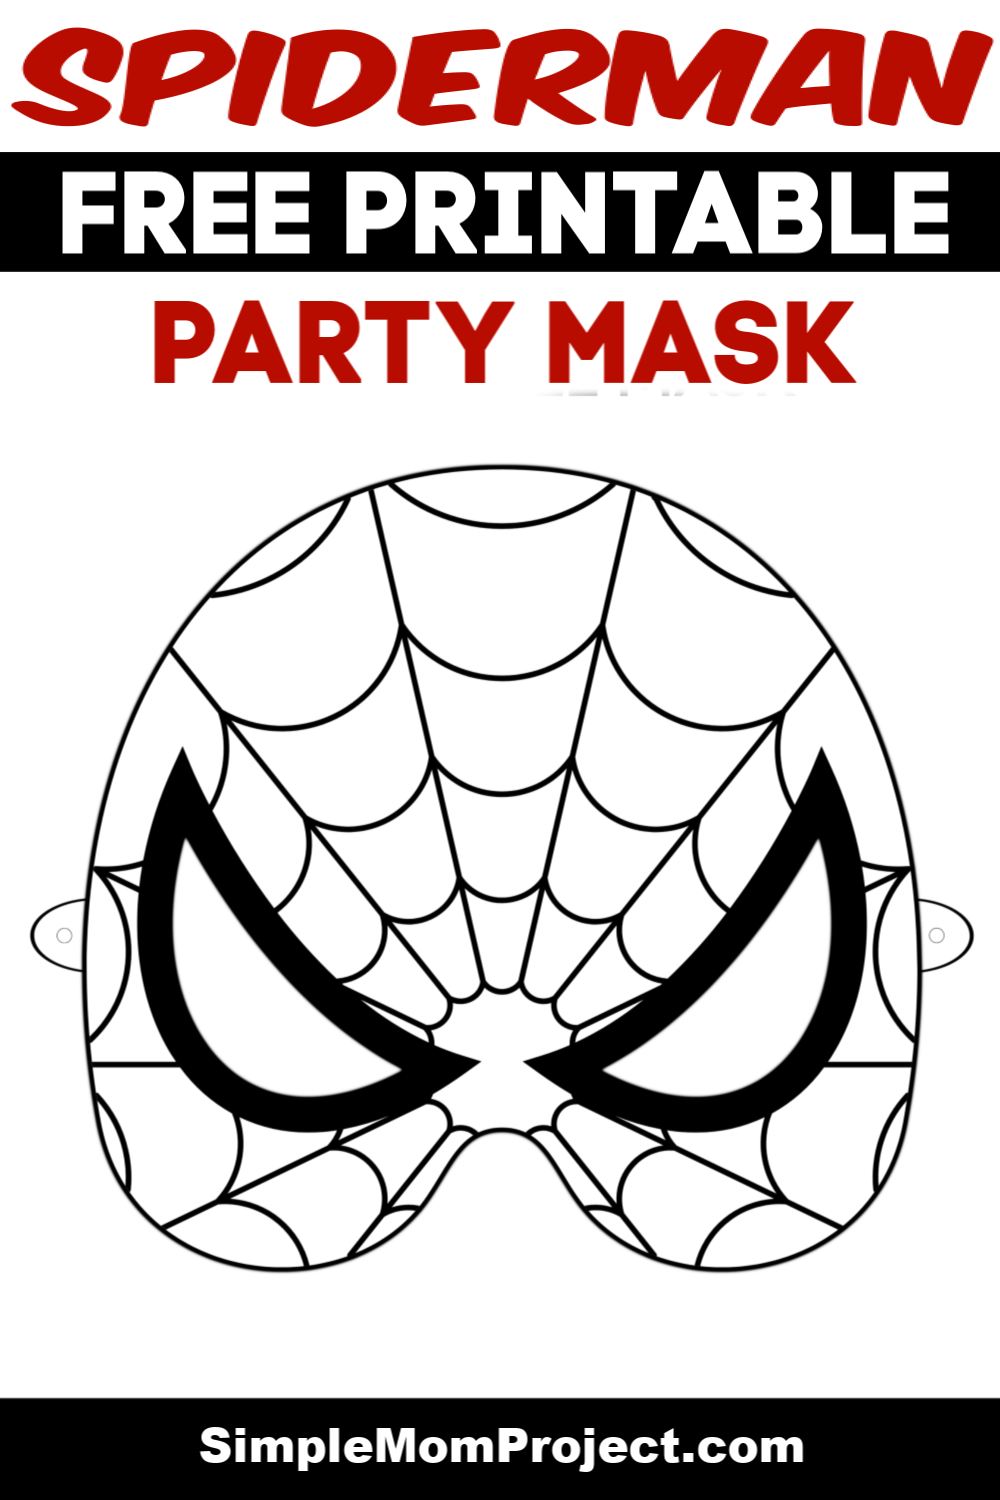 Are You Looking For Spiderman Birthday Party Ideas Use This Free Printable Boys Spiderman Mask Temp Face Masks For Kids Mask For Kids Spiderman Birthday Party